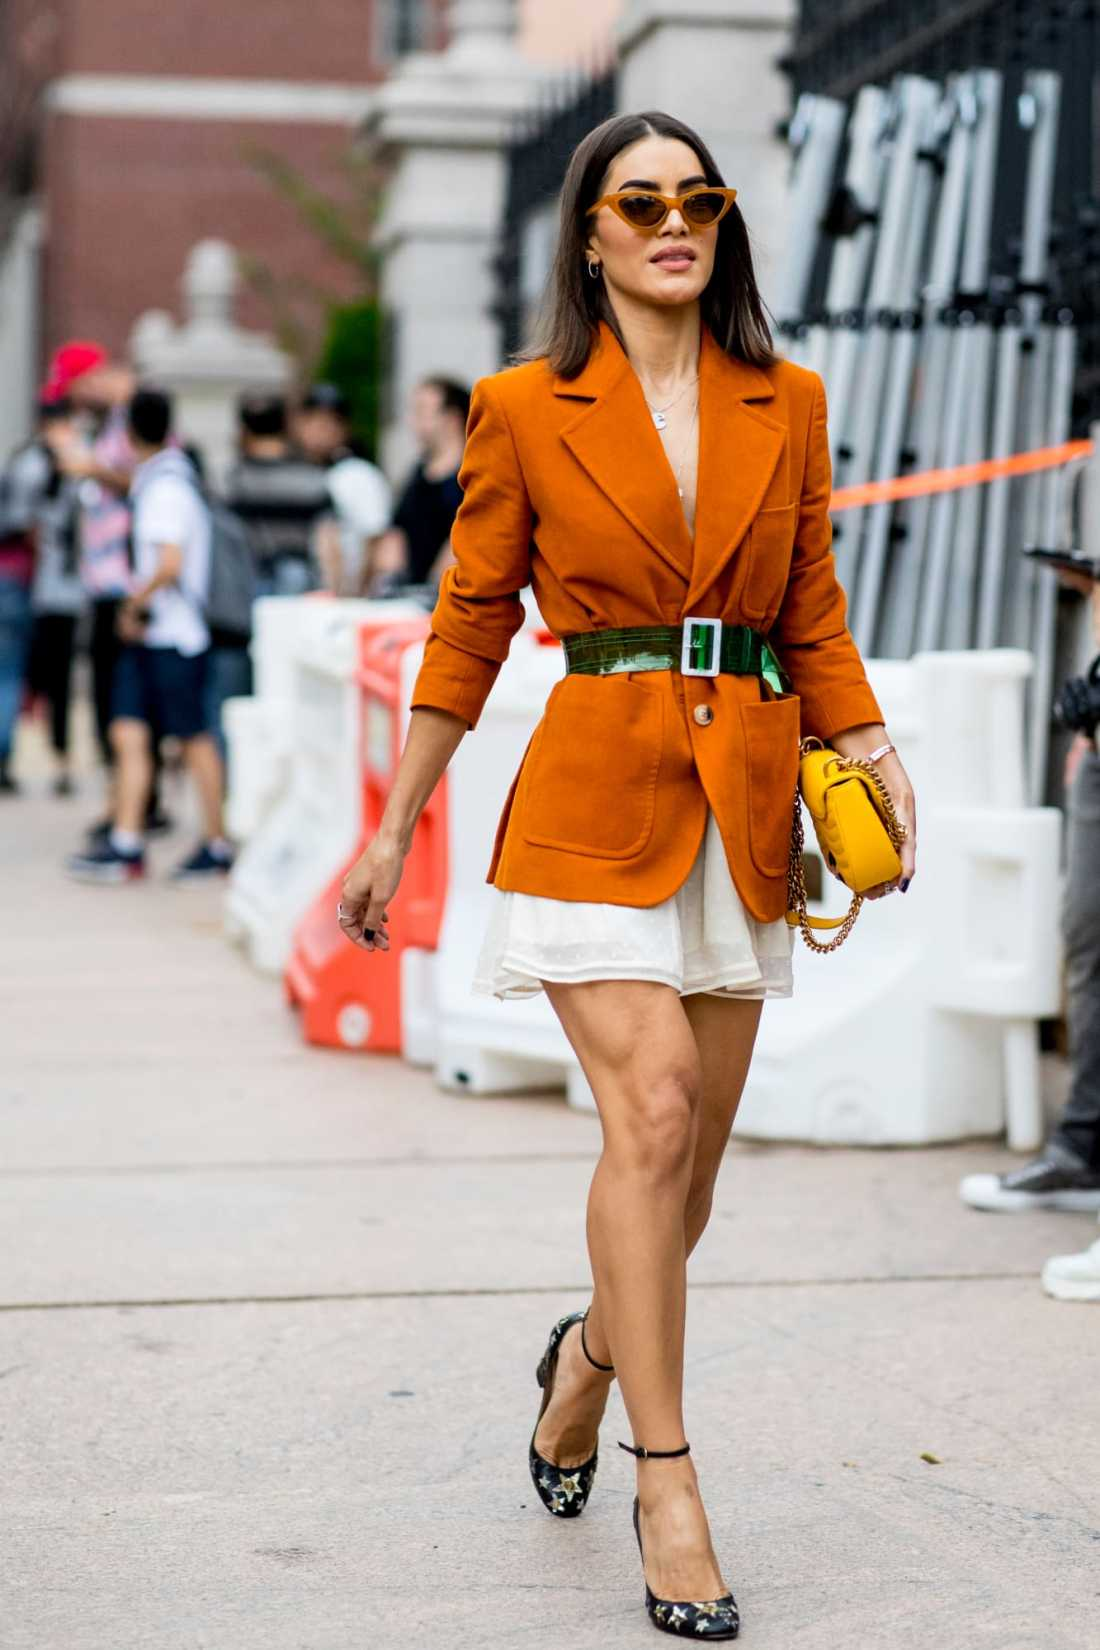 new-york-fashion-week-street-style-spring-2019-day-2-32